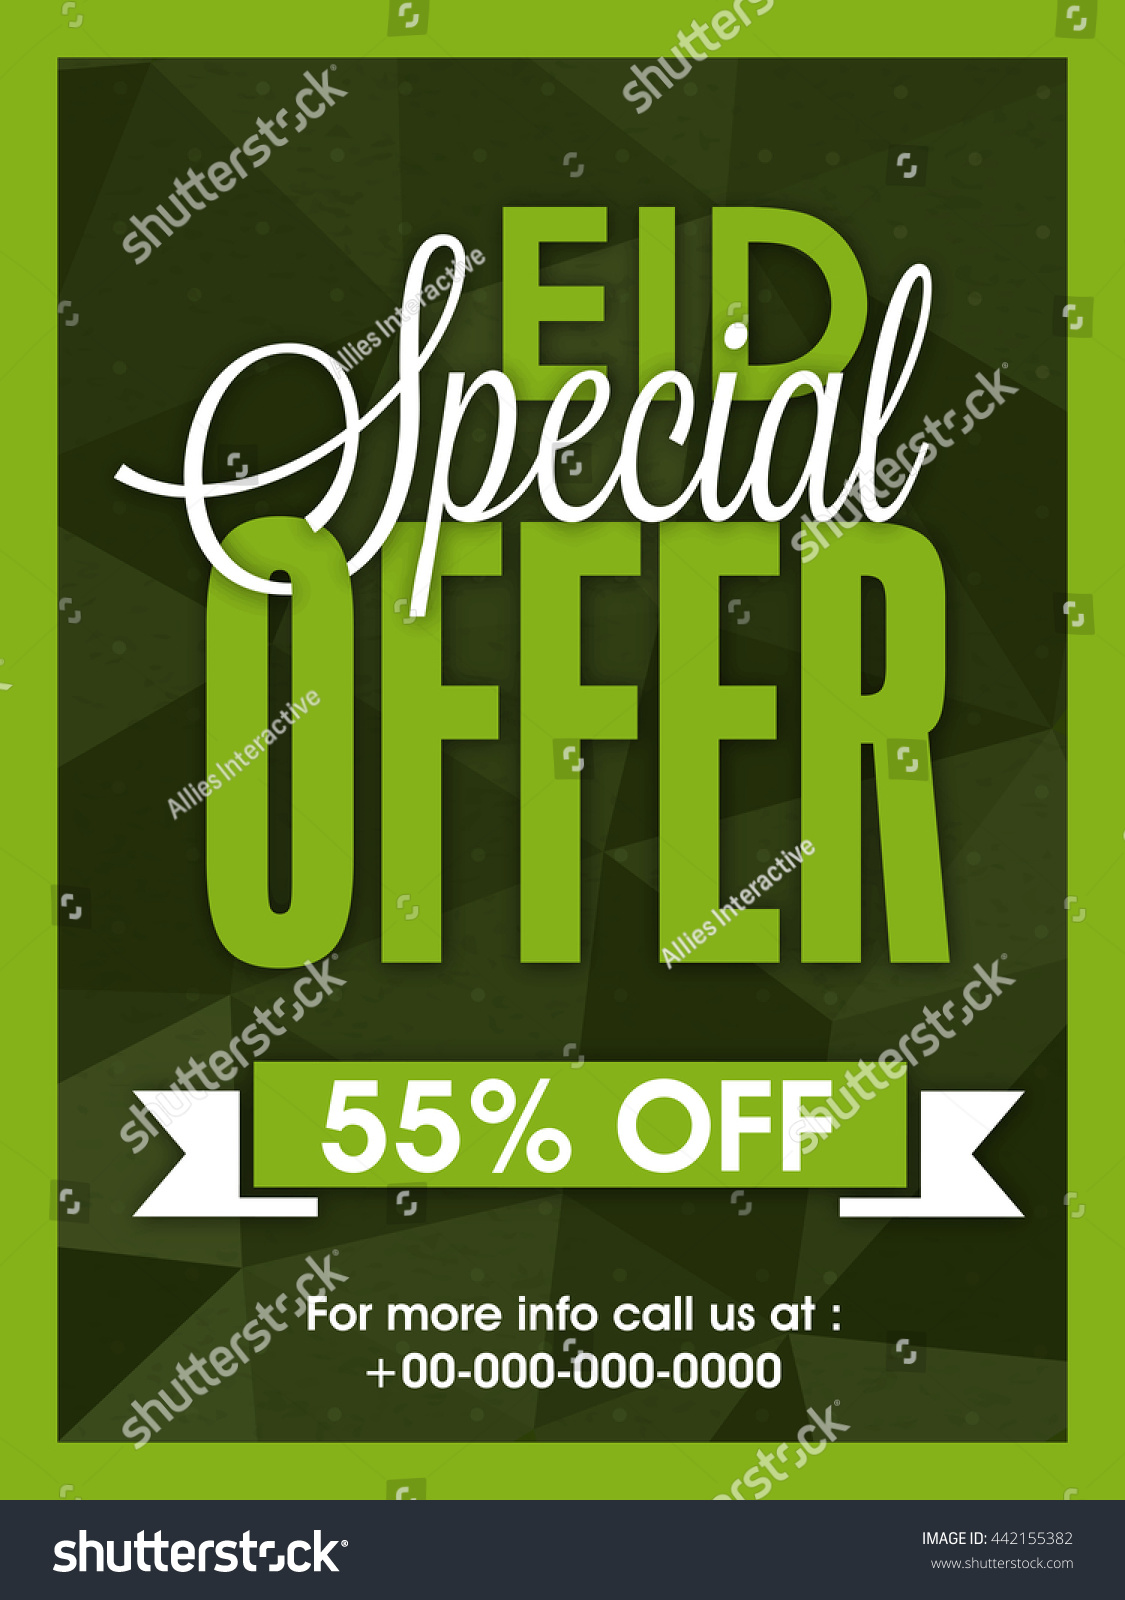 eid special offer poster banner flyer discount save to a lightbox